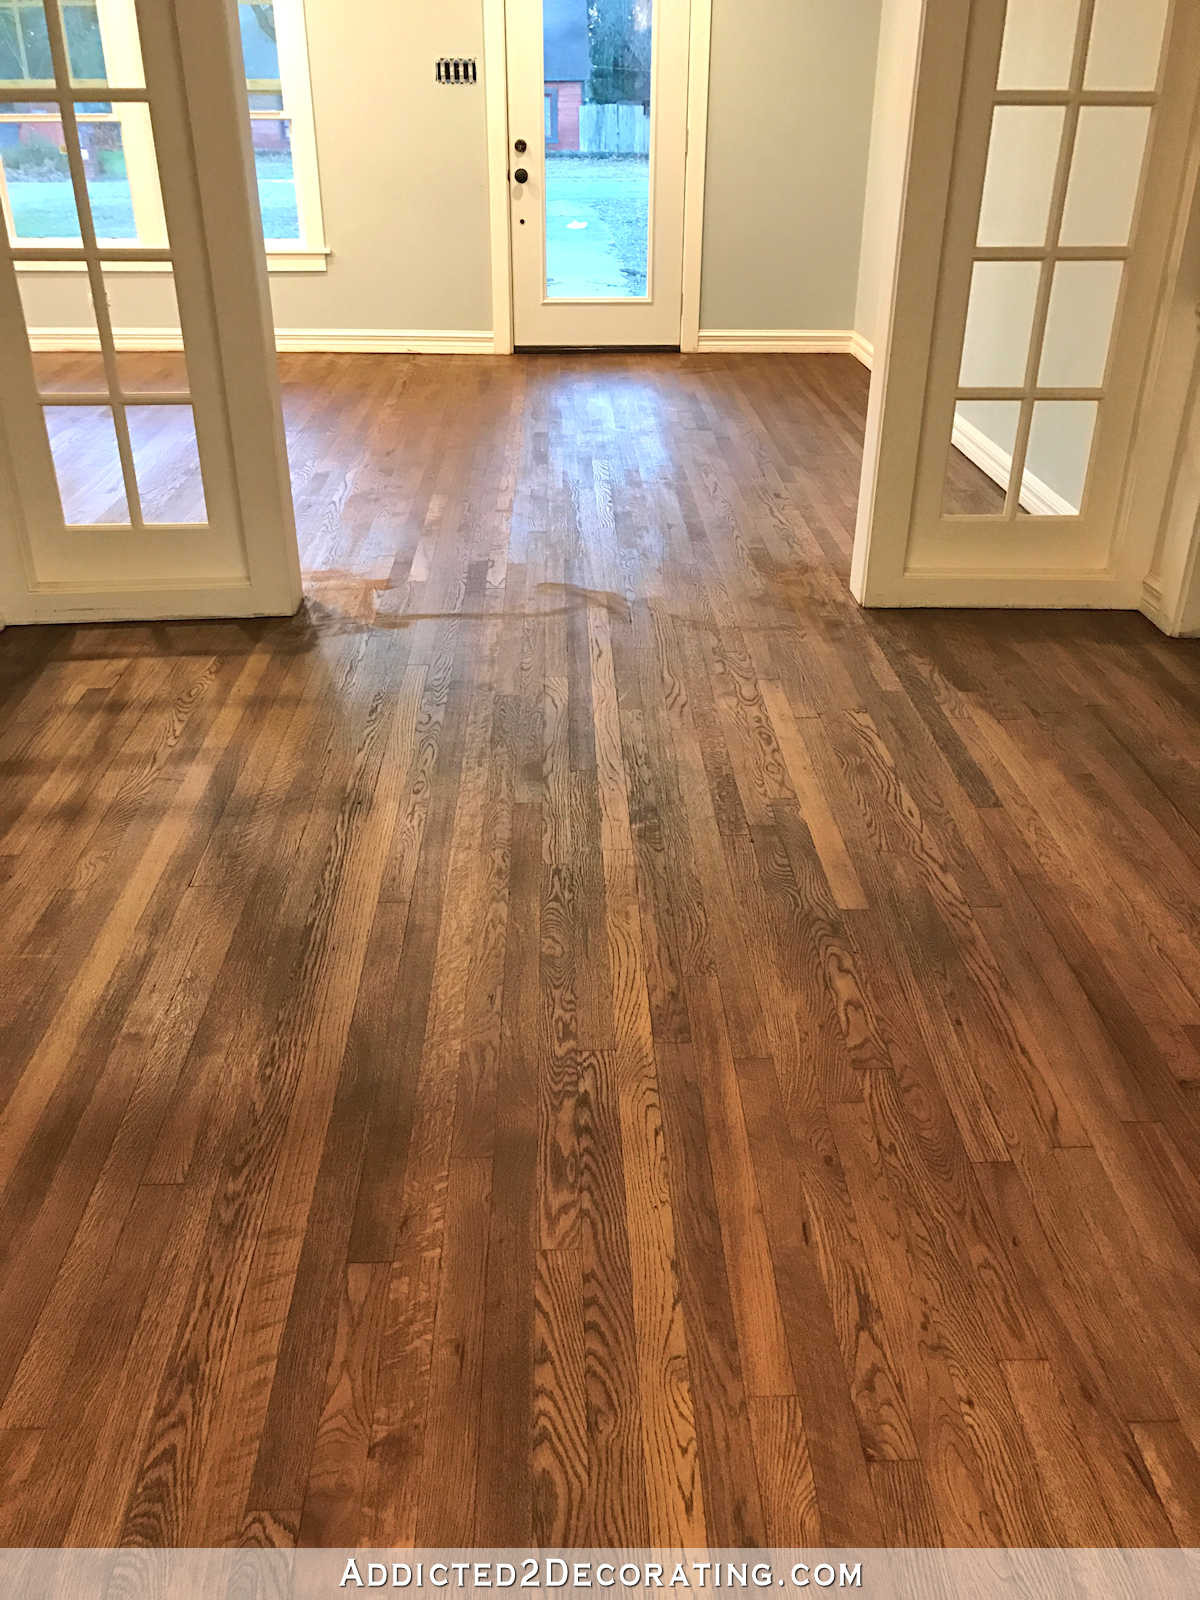 hardwood floor cleaning tips of adventures in staining my red oak hardwood floors products process intended for staining red oak hardwood floors 9 stain on entryway and music room floors